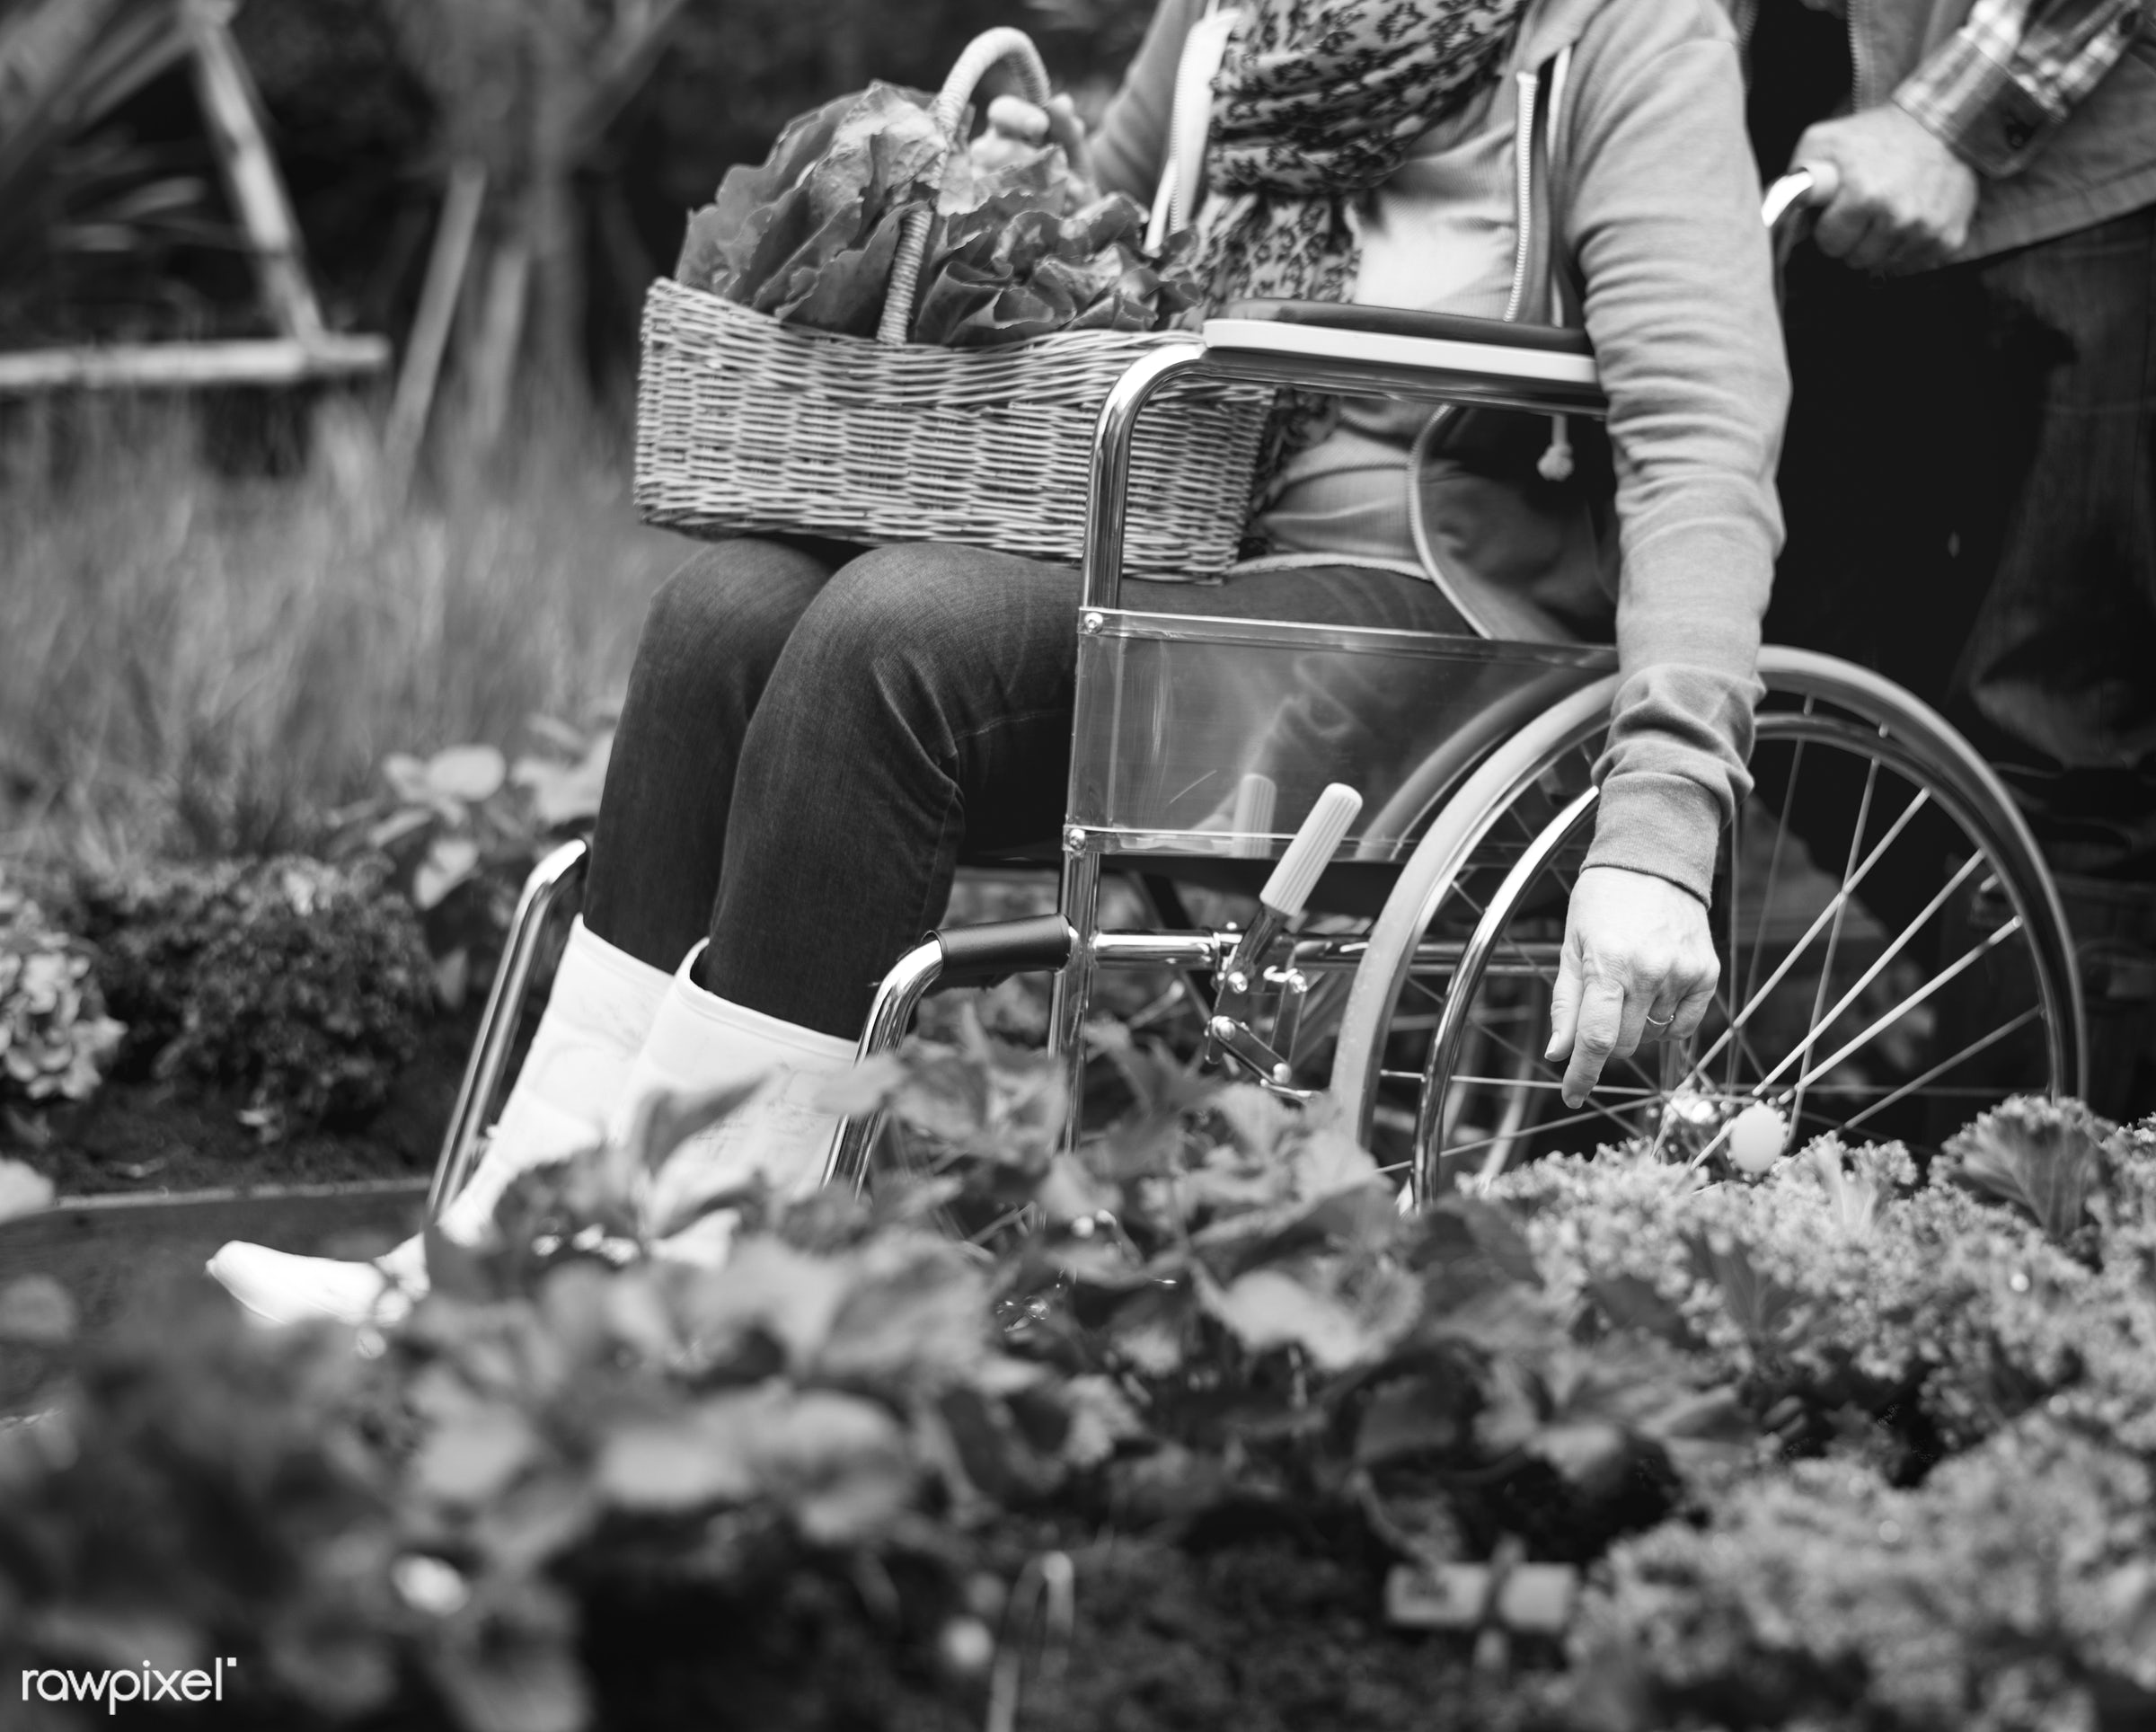 salad, person, relax, people, crop, retirement, farmer, woman, lifestyle, dirt, agriculture, planting, leisure, nutrition,...